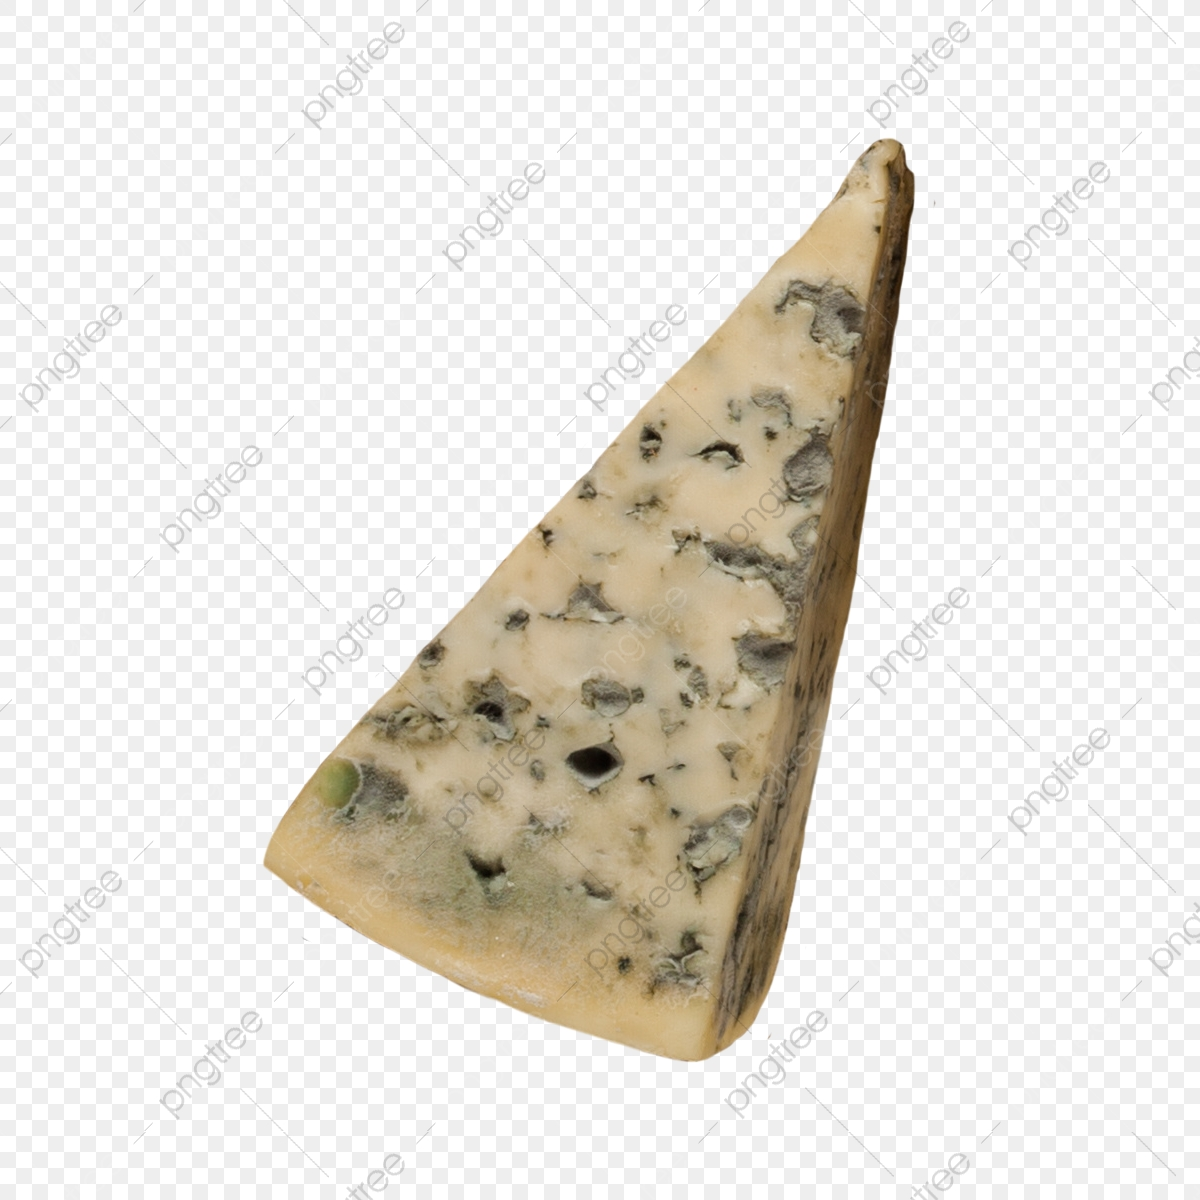 Moldy Cheese Slice, Moldy Cheese, Moldy PNG Transparent.